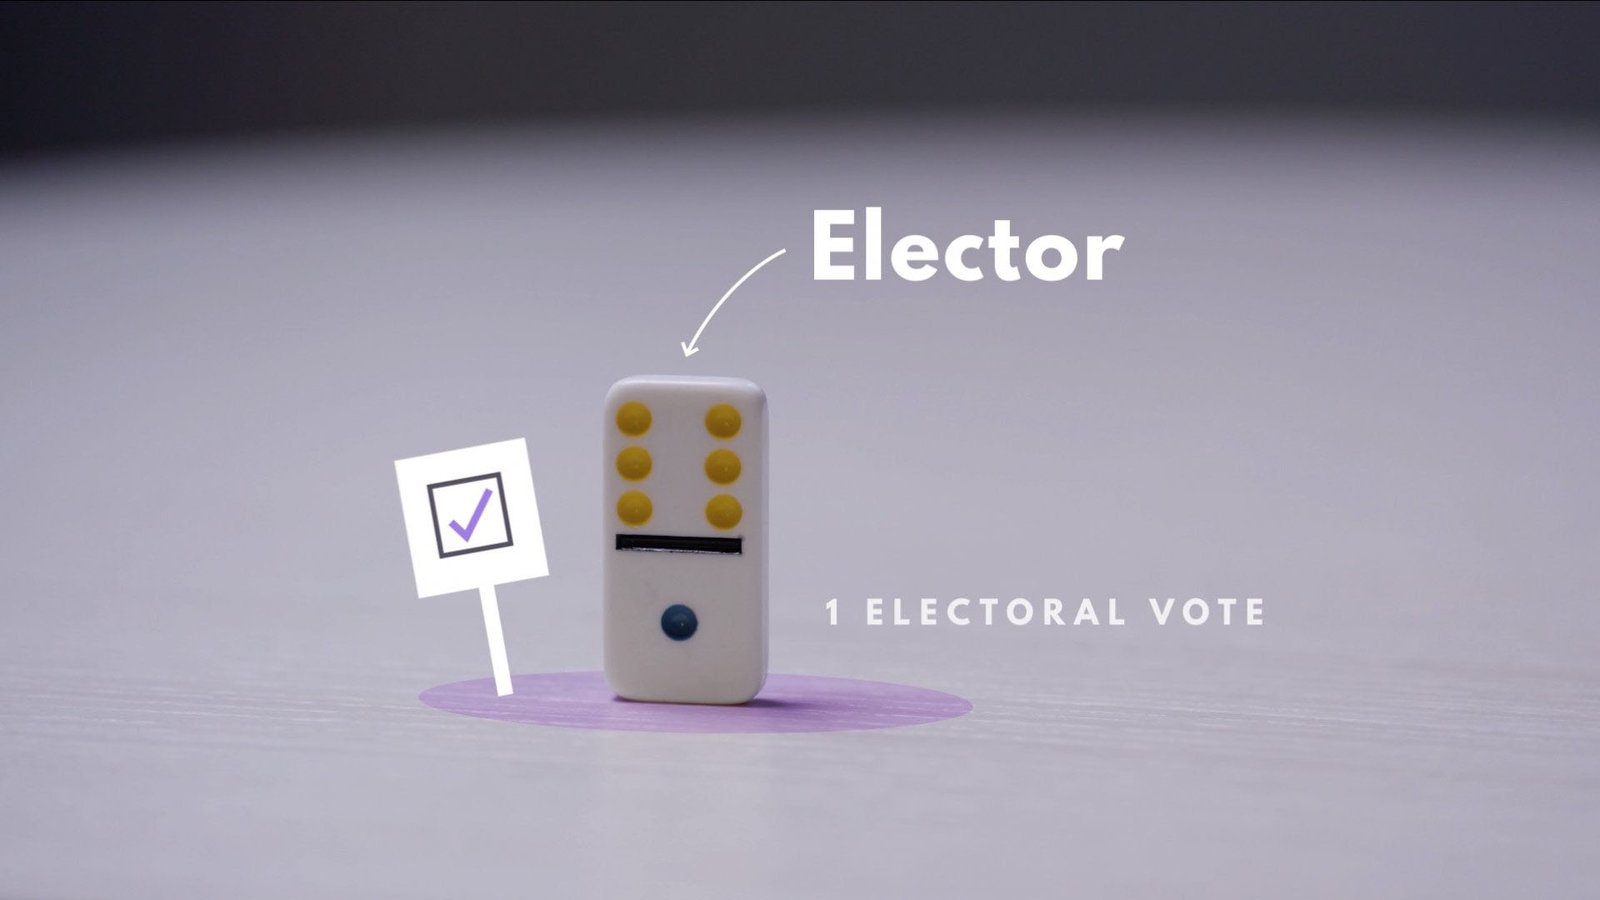 Off The Trail - How The Electoral College Gives Some Voters More Power Than Others